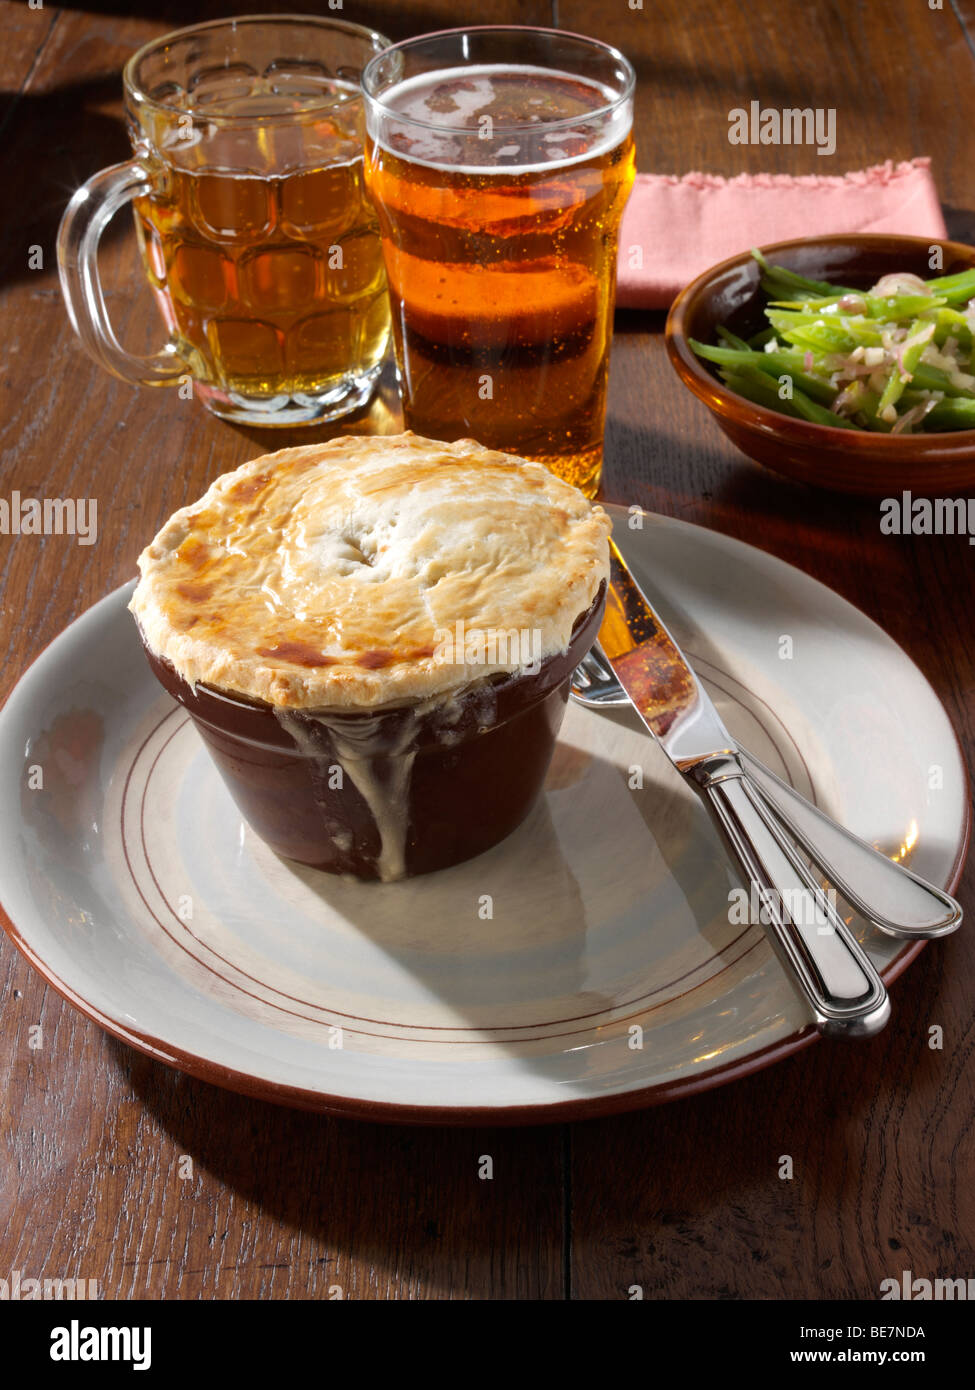 Inidual chicken pie with runner beans and beer in a table setting & Inidual chicken pie with runner beans and beer in a table setting ...